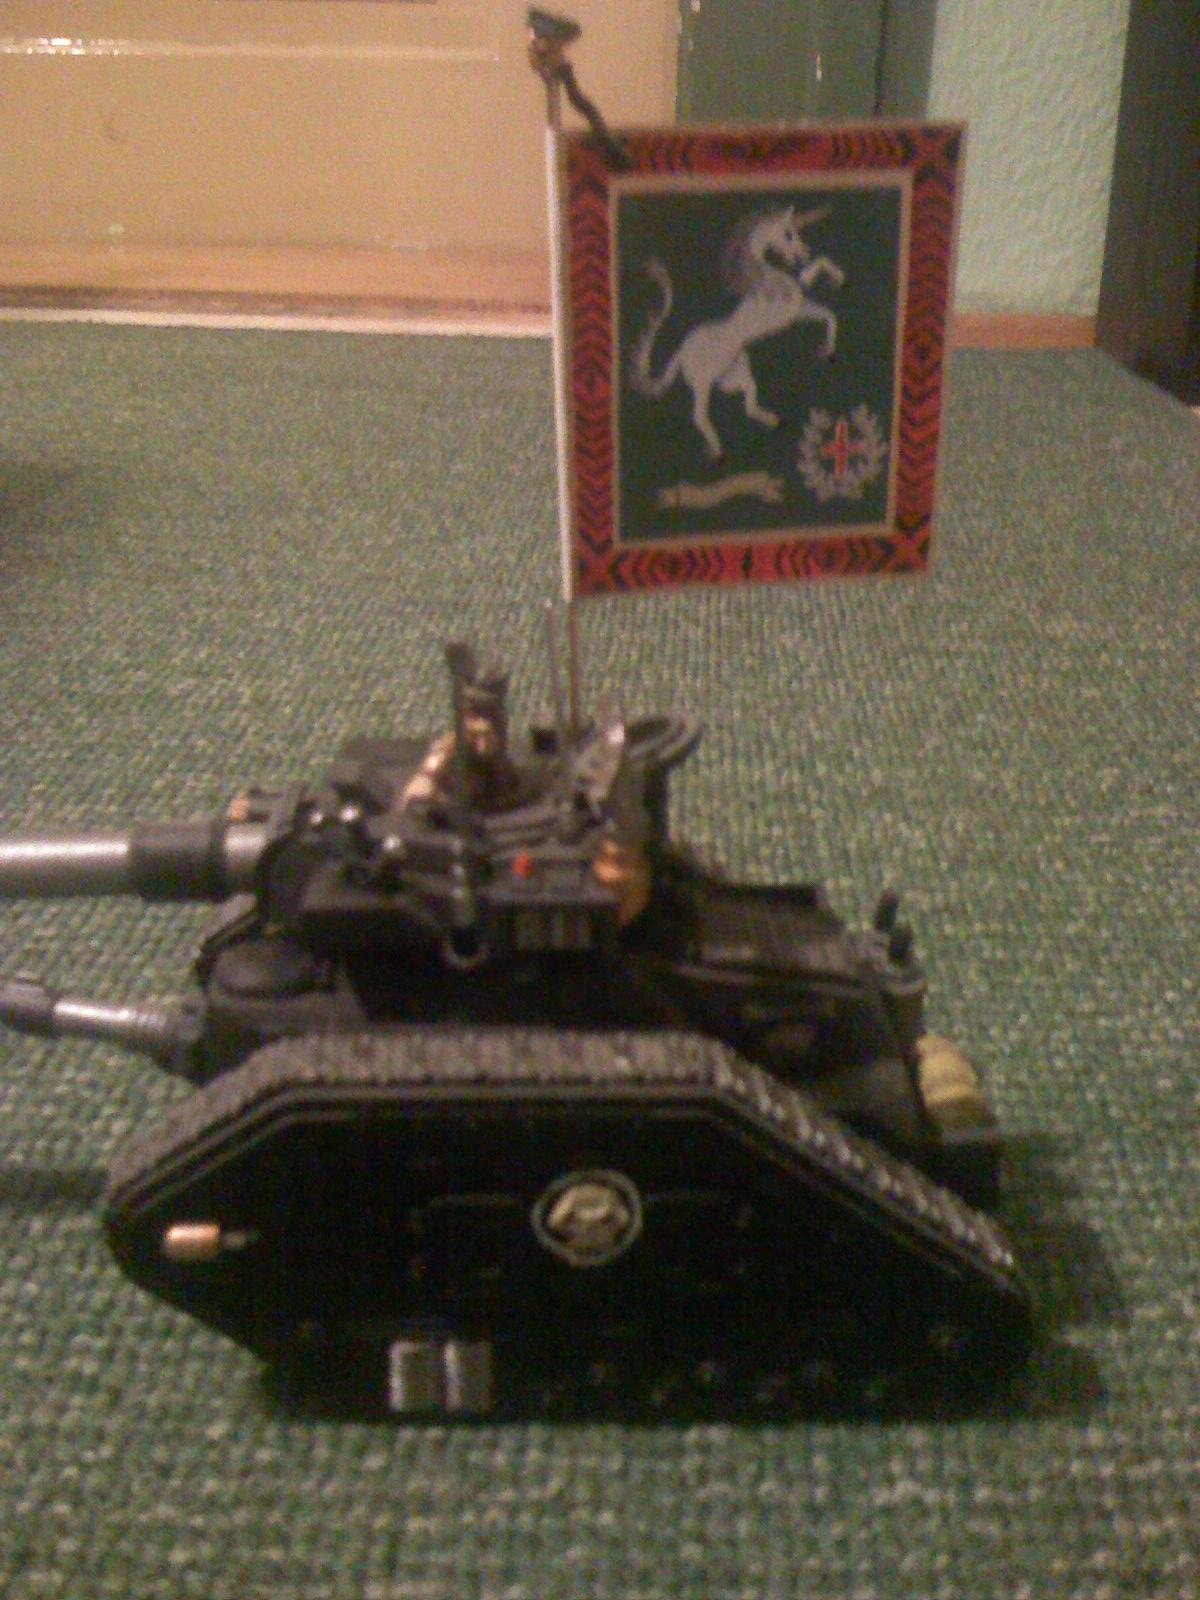 Armored Company, Blurred Photo, Imperial Guard, Vanquisher, Warhammer 40,000